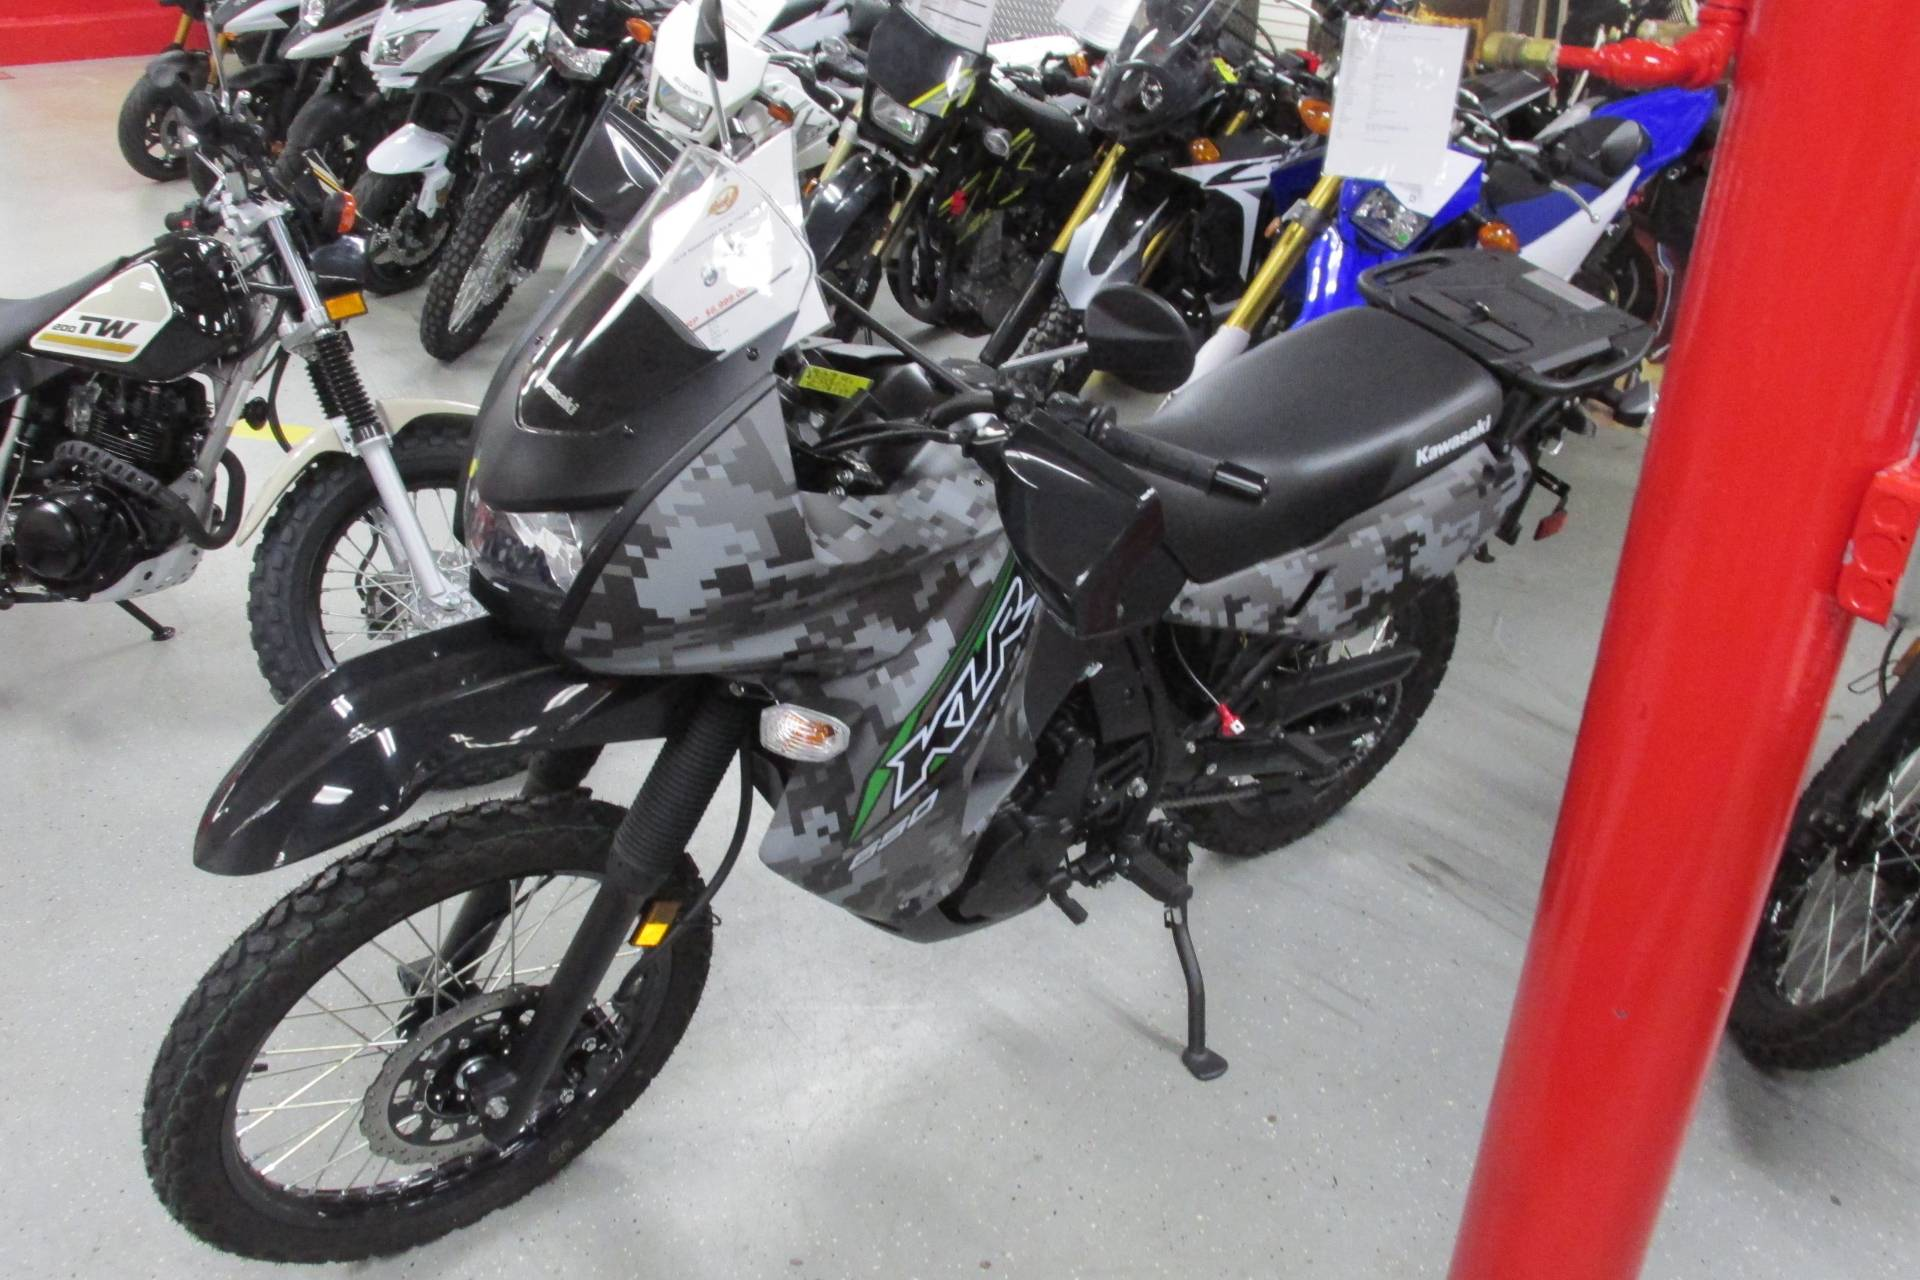 2018 Kawasaki KLR 650 in Springfield, Ohio - Photo 3